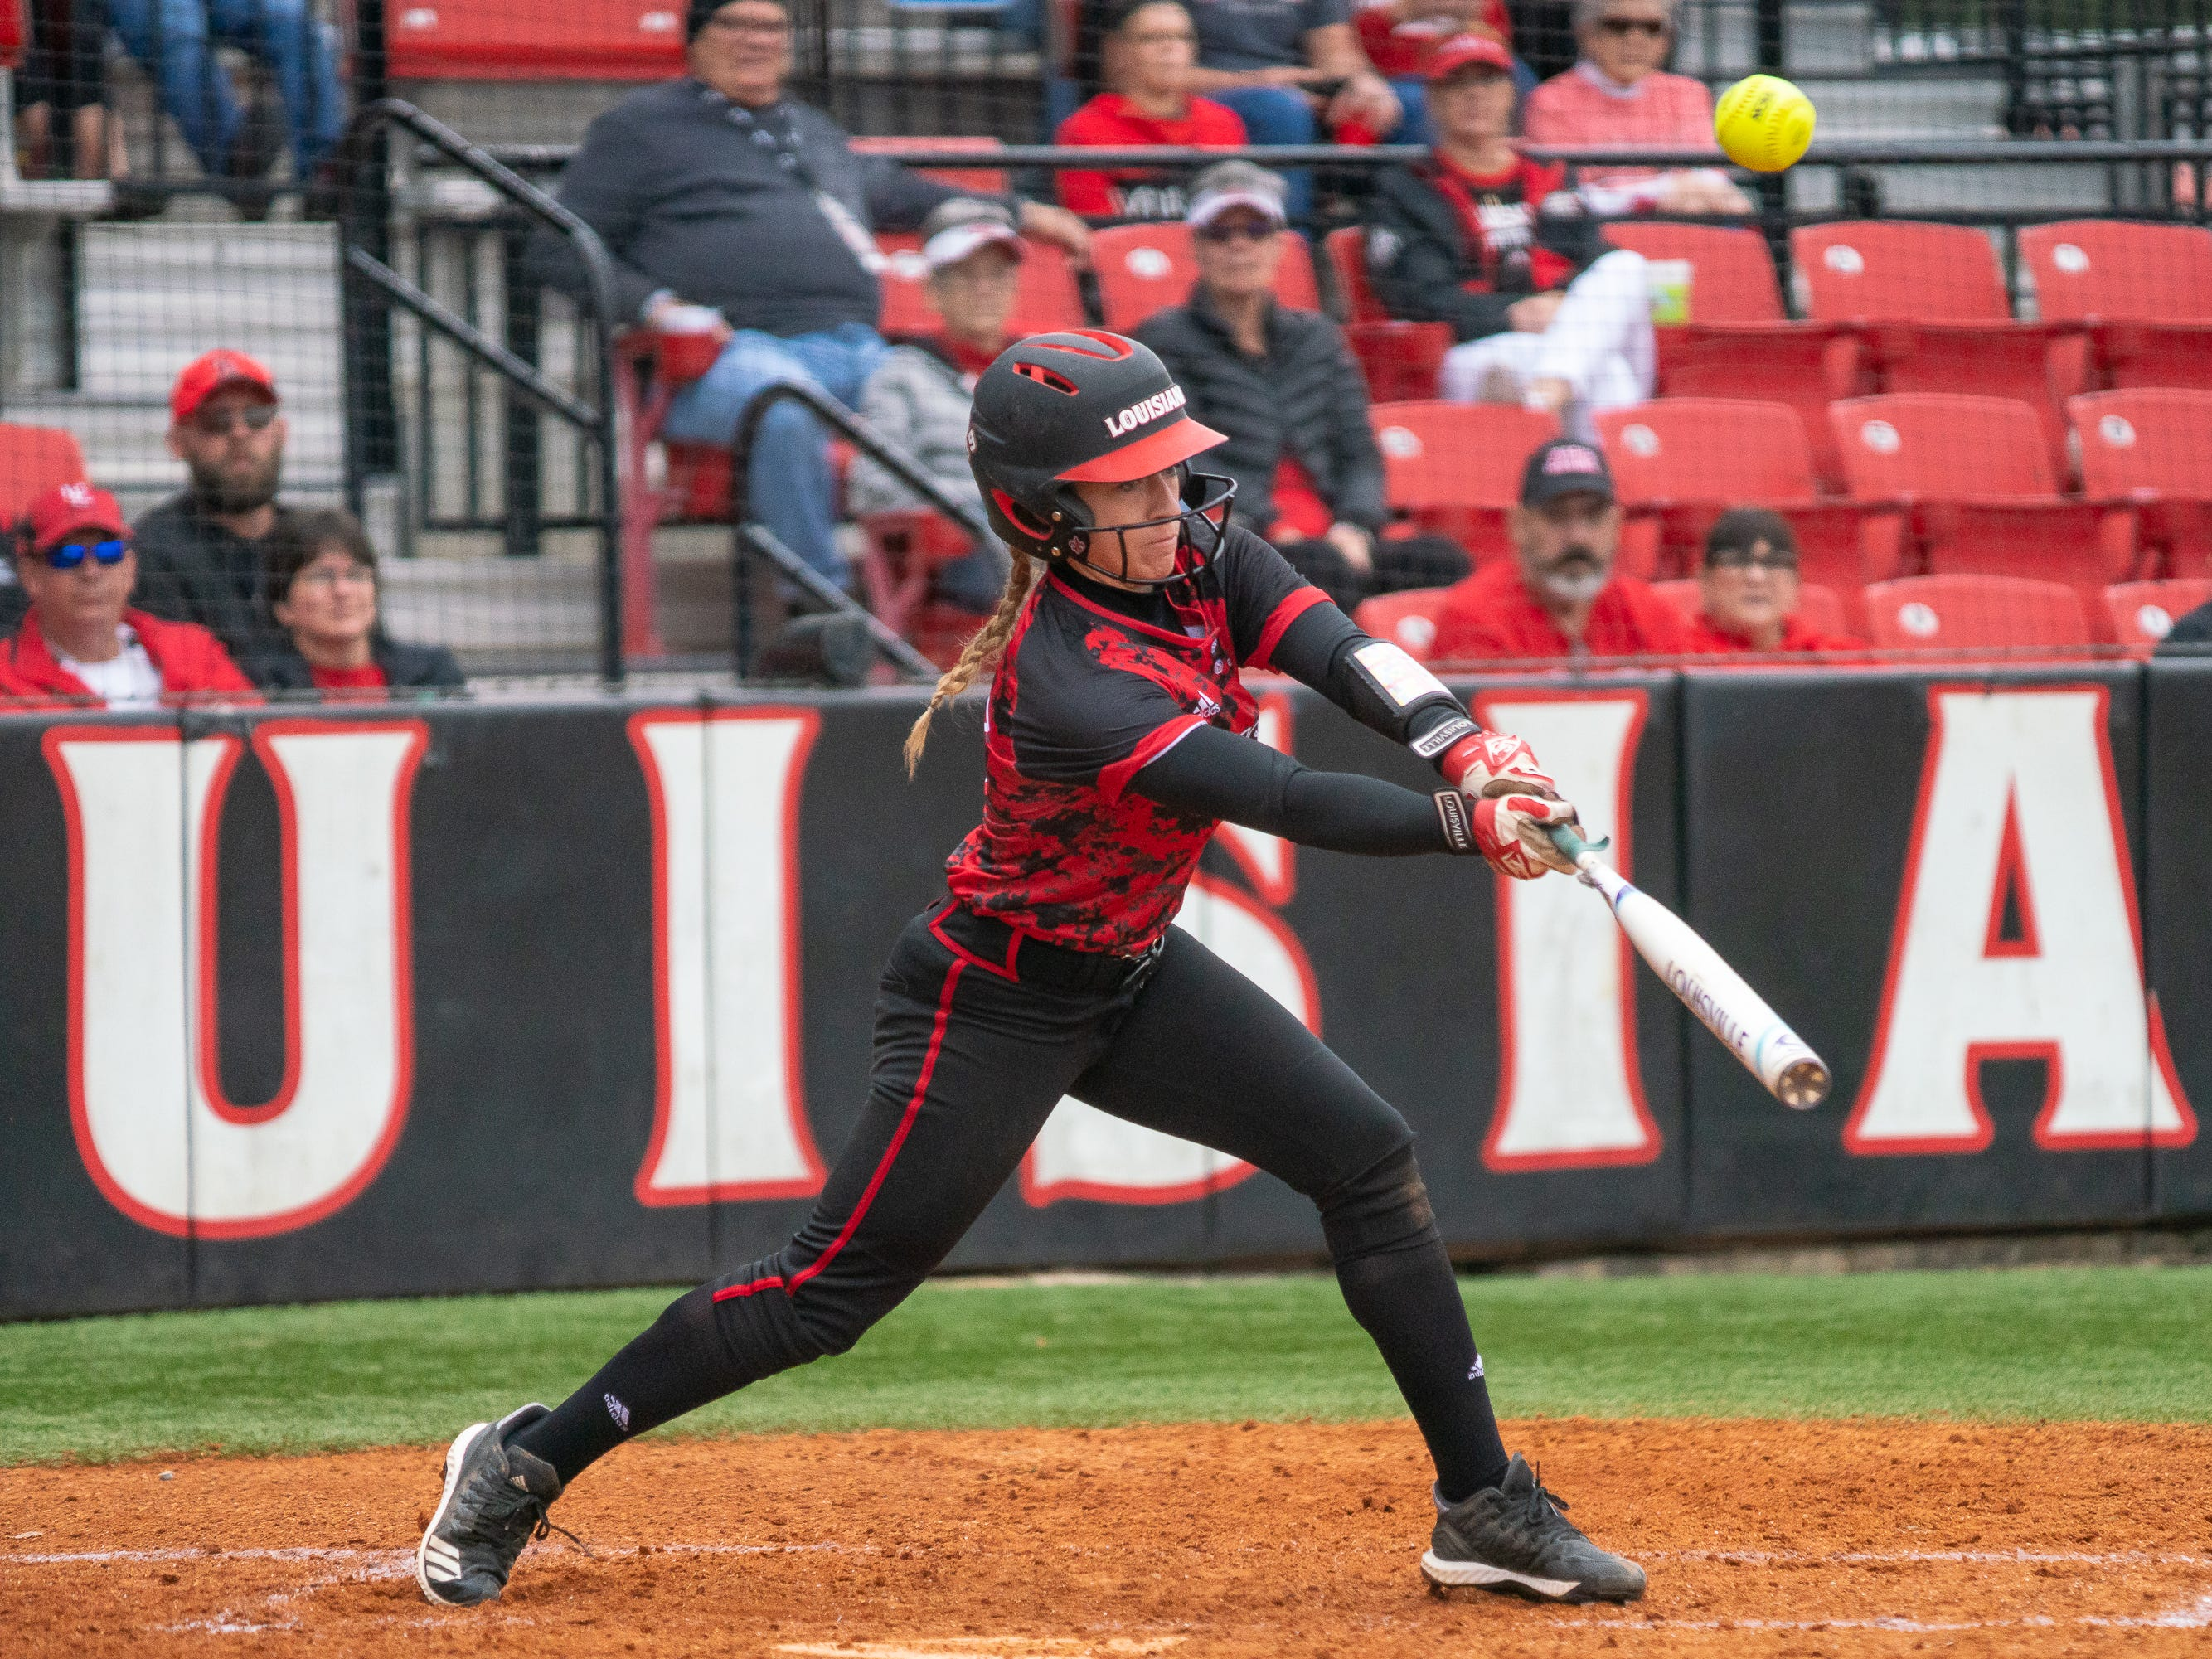 UL's Kara Gremillion hits the ball high as the Ragin' Cajuns take on Stephen F. Austin at Lamson Park on Saturday, Feb. 16, 2019.